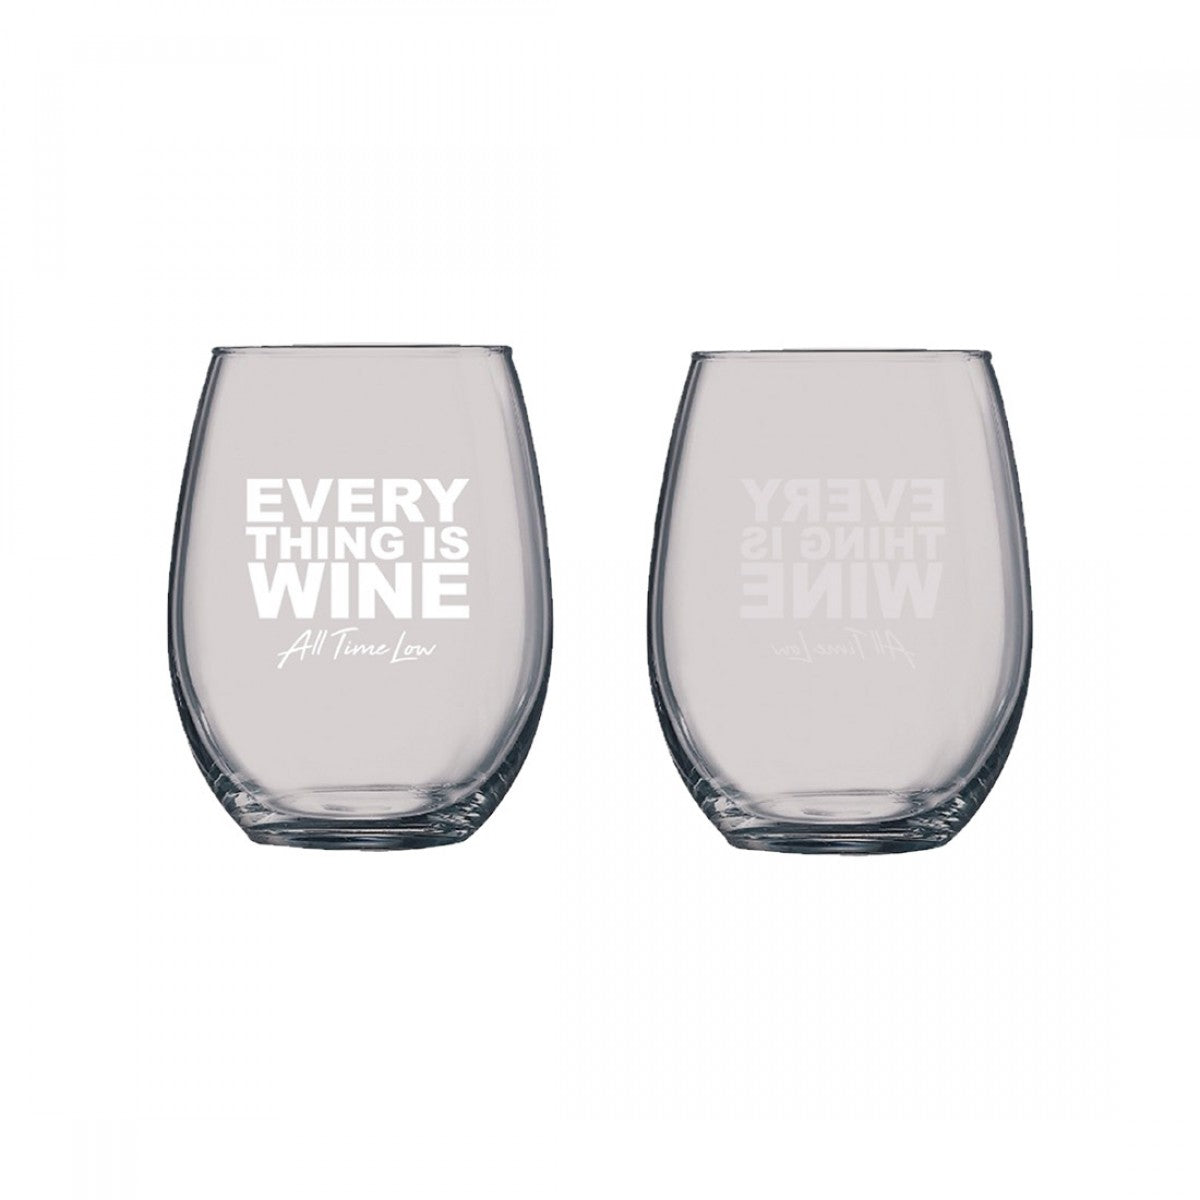 EVERYTHING IS WINE GLASS